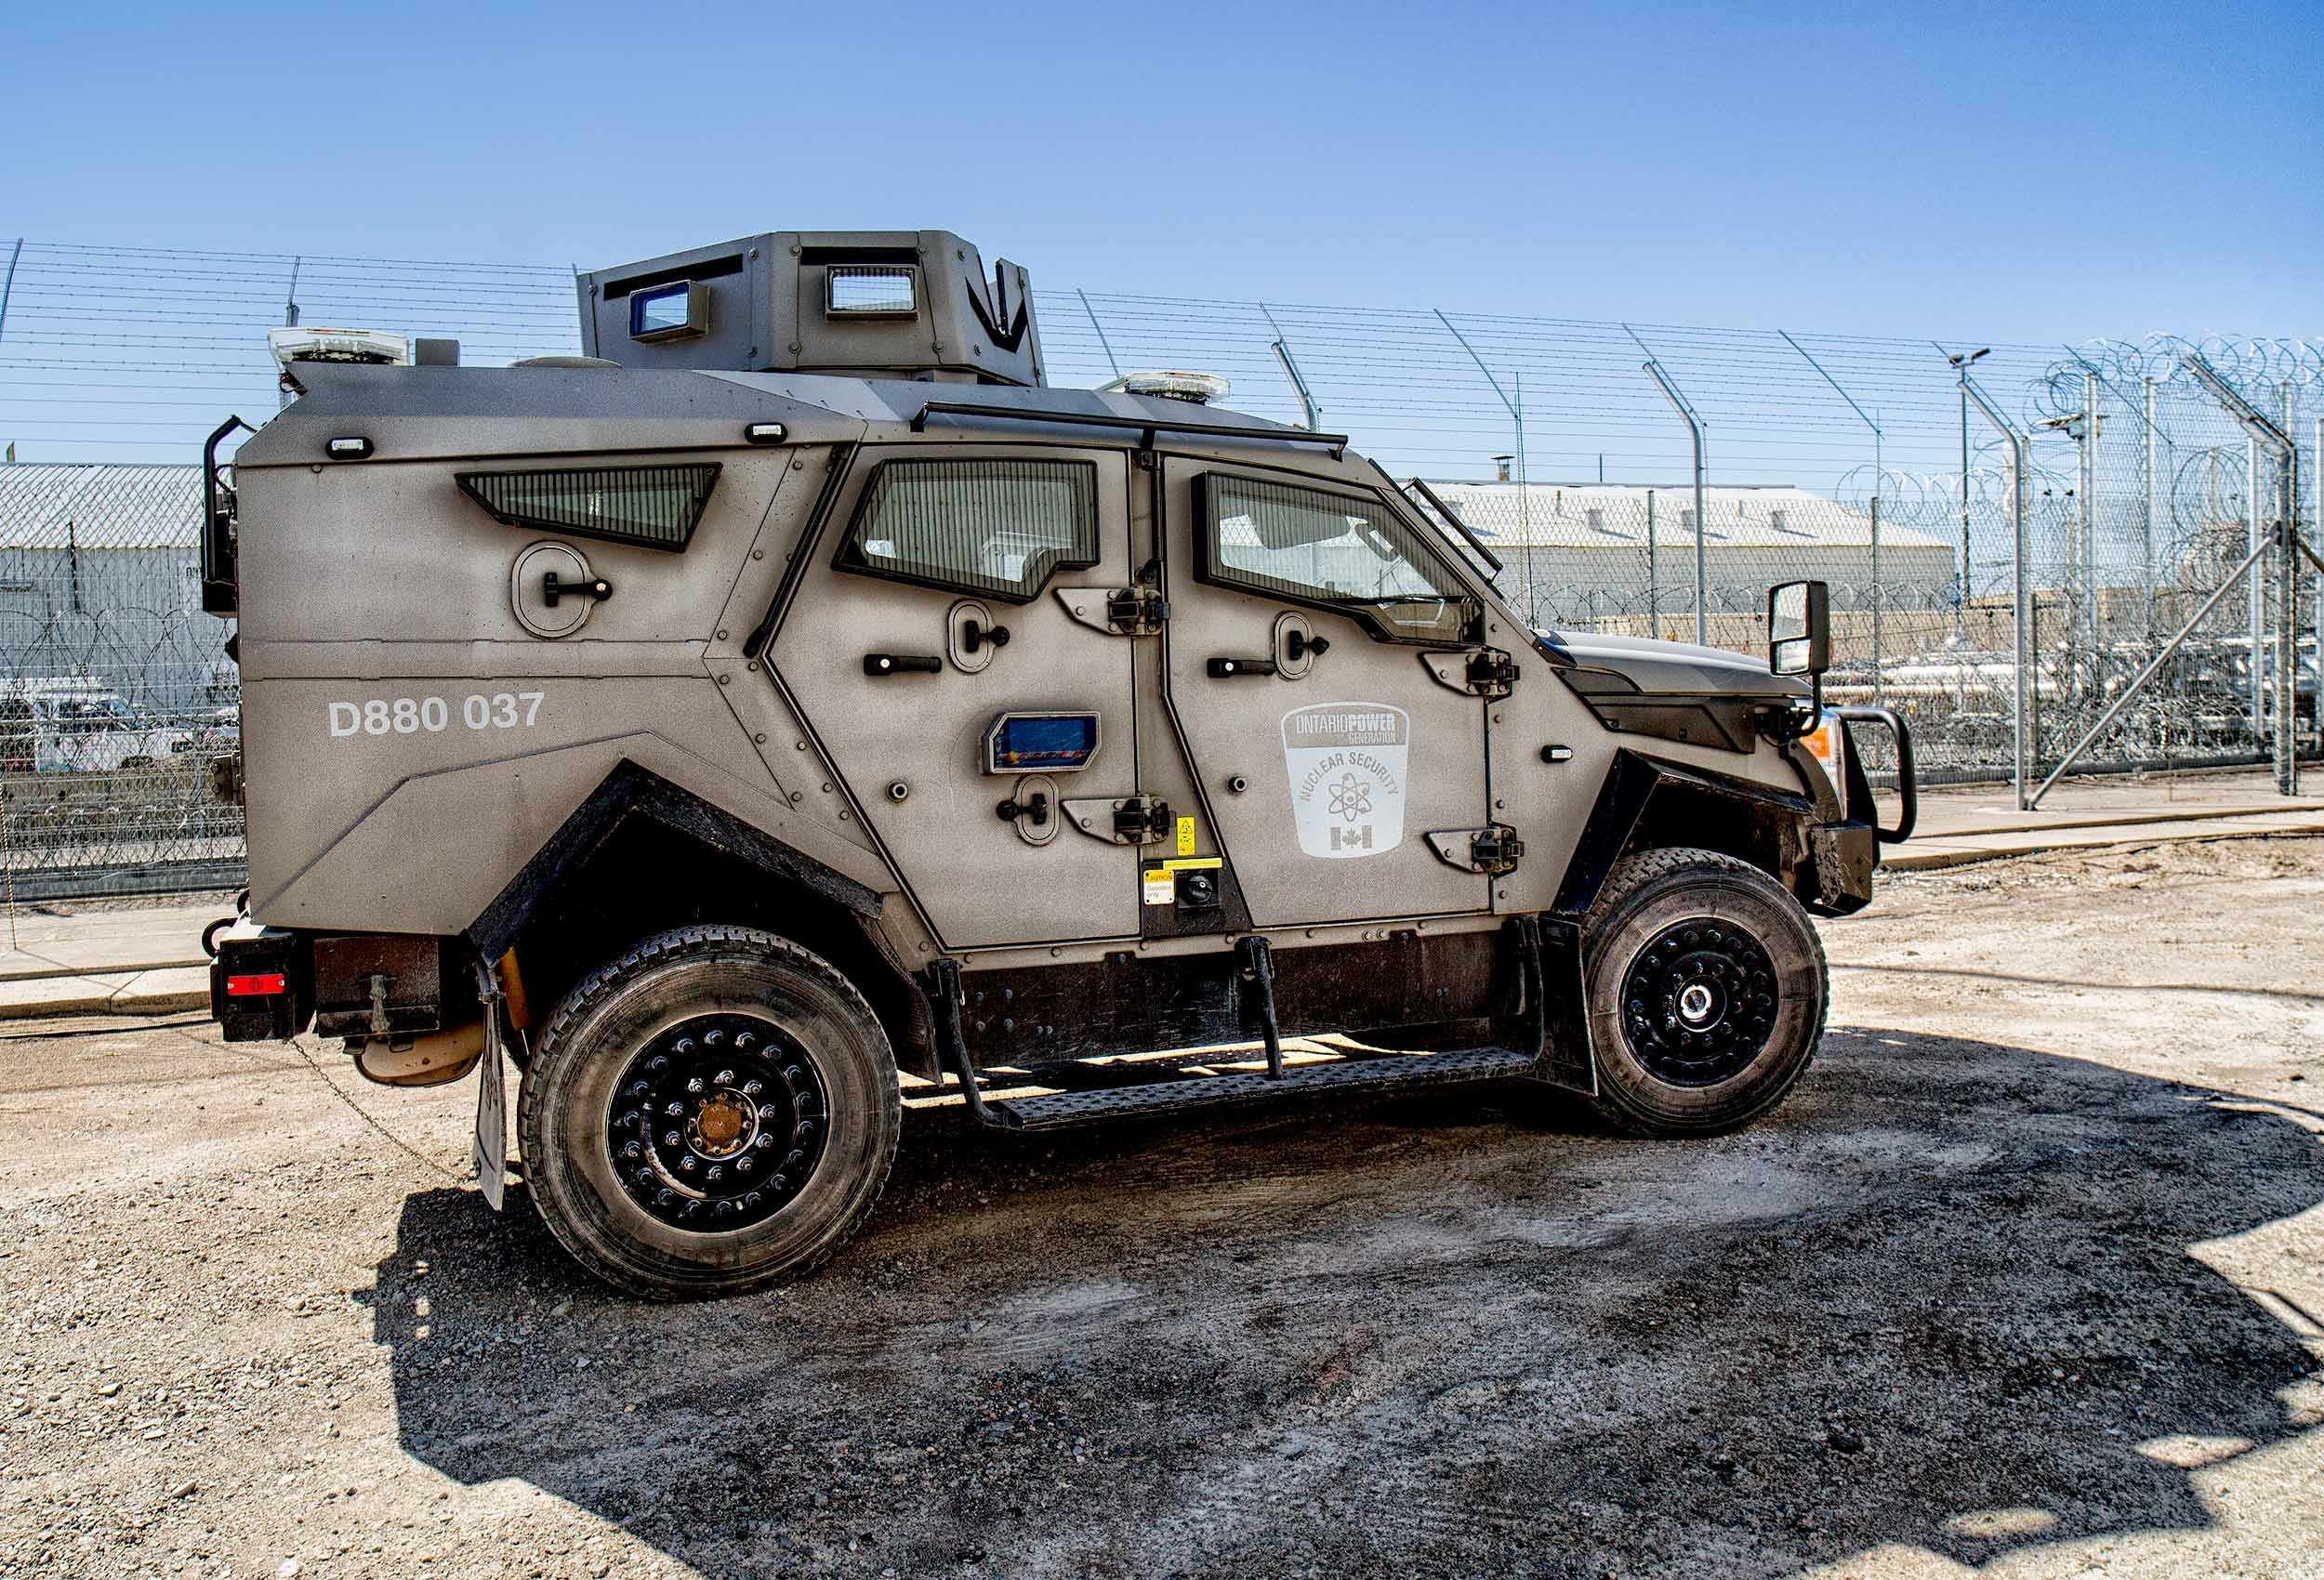 industrial-editorial-photo-of-an-darlington-nuclear-plant-light-armoured-security-vehicle-used-at-nuclear-power-plant